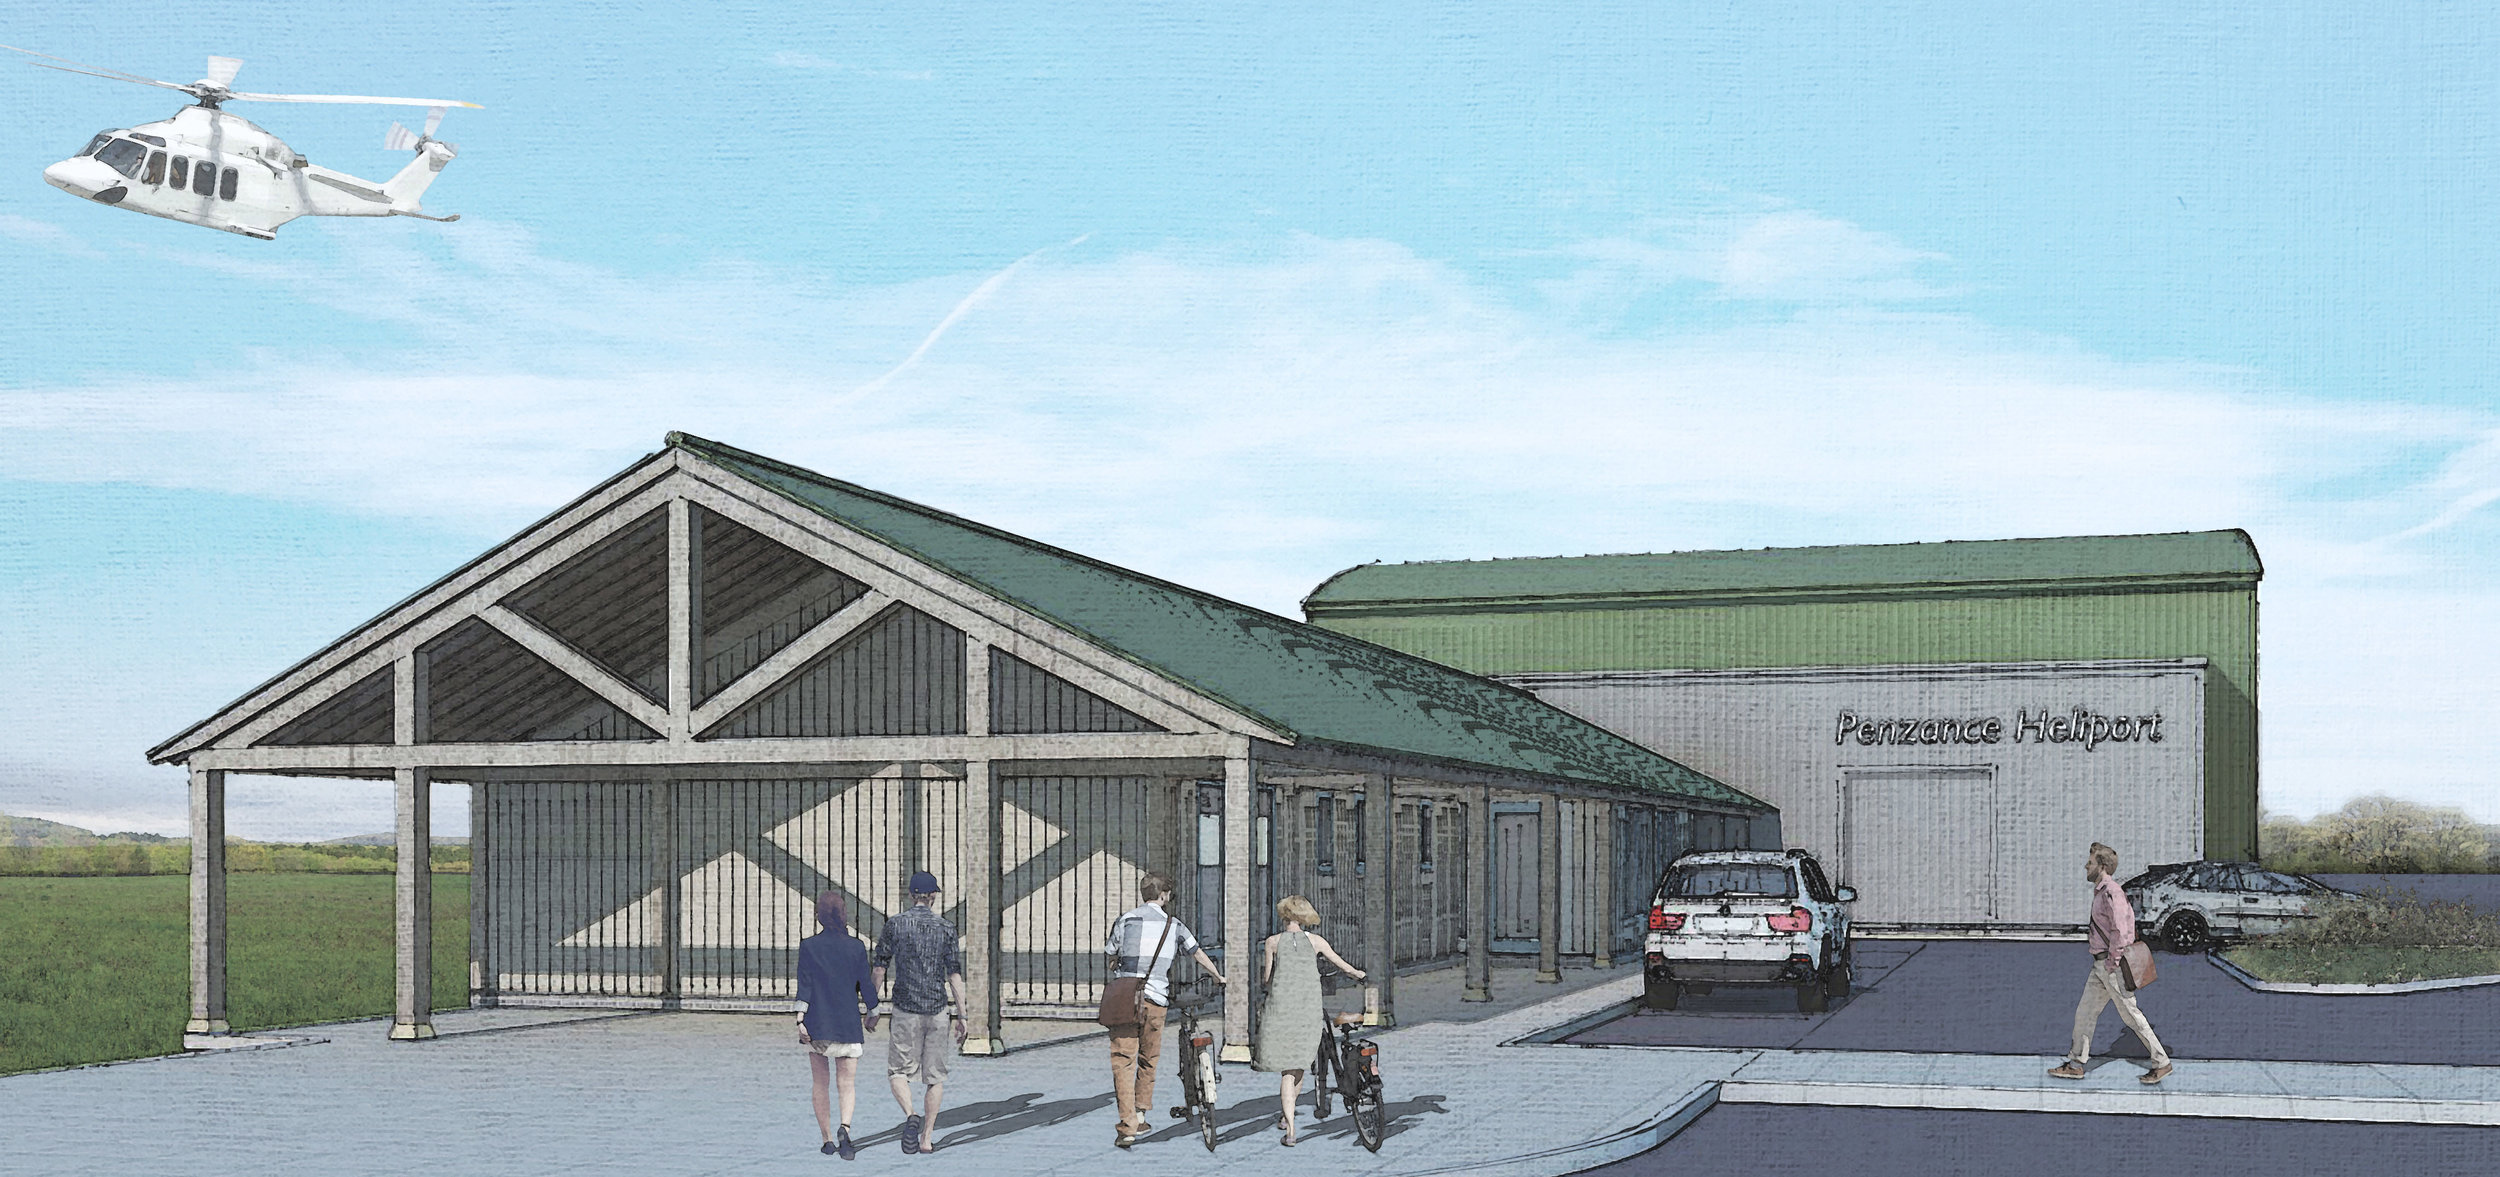 Artist's impression of the new Penzance Heliport.